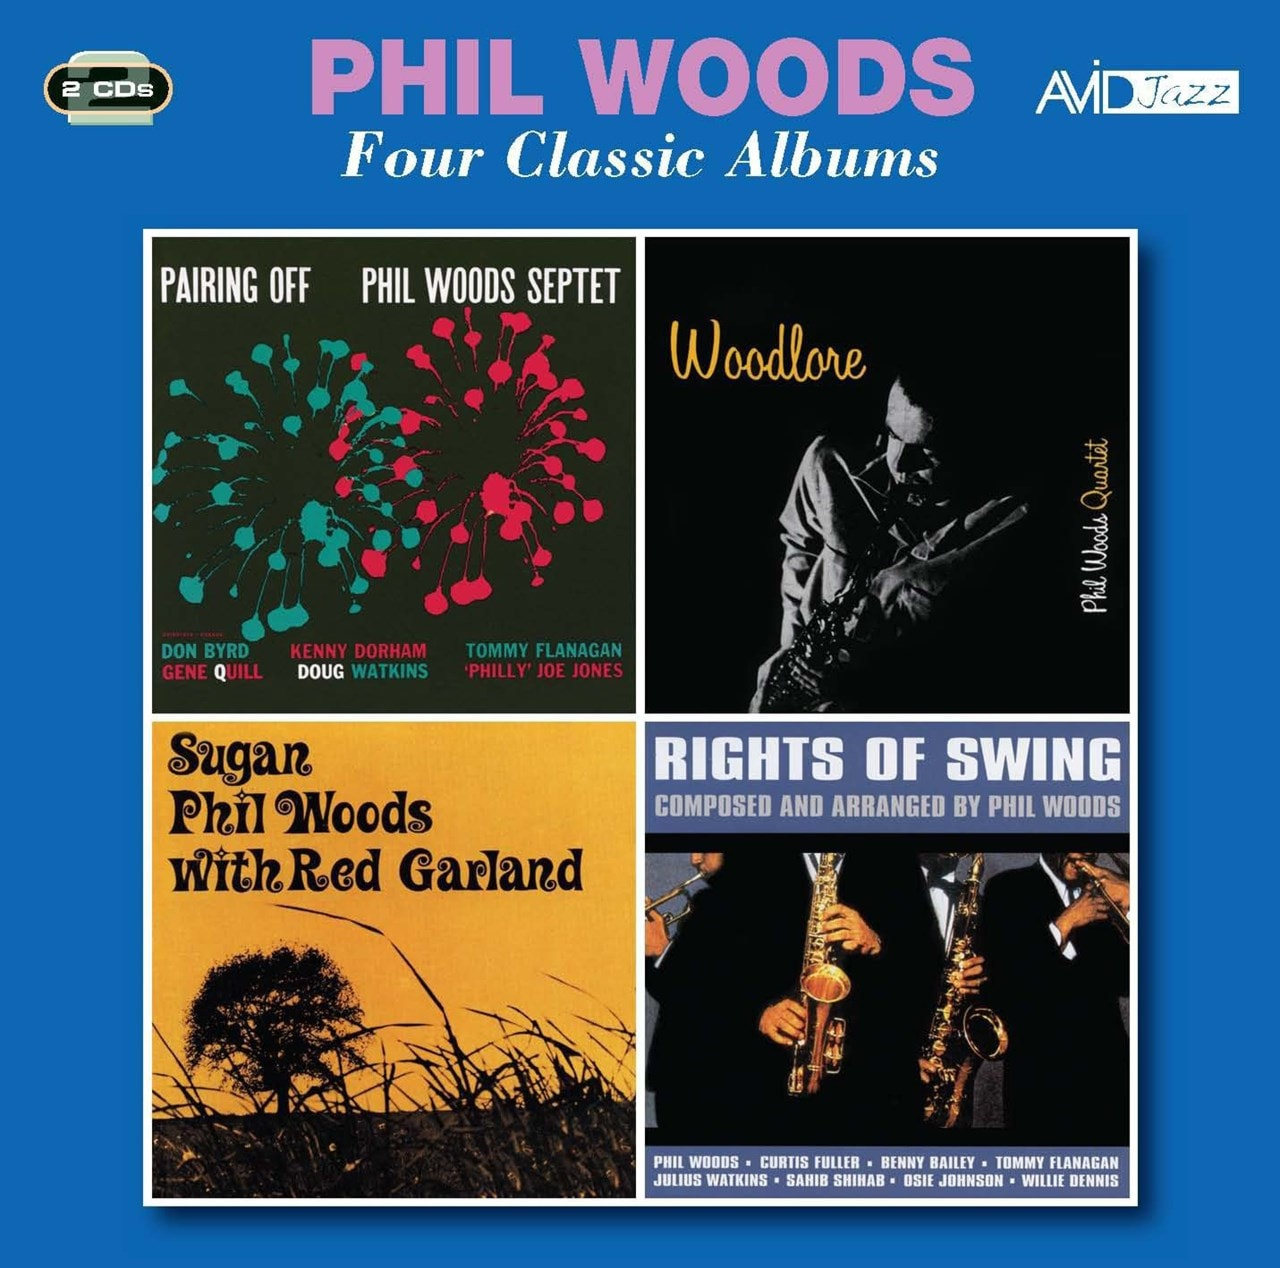 Four Classic Albums: Pairing Off/Woodlore/Sugan/Rights of Swing - 1